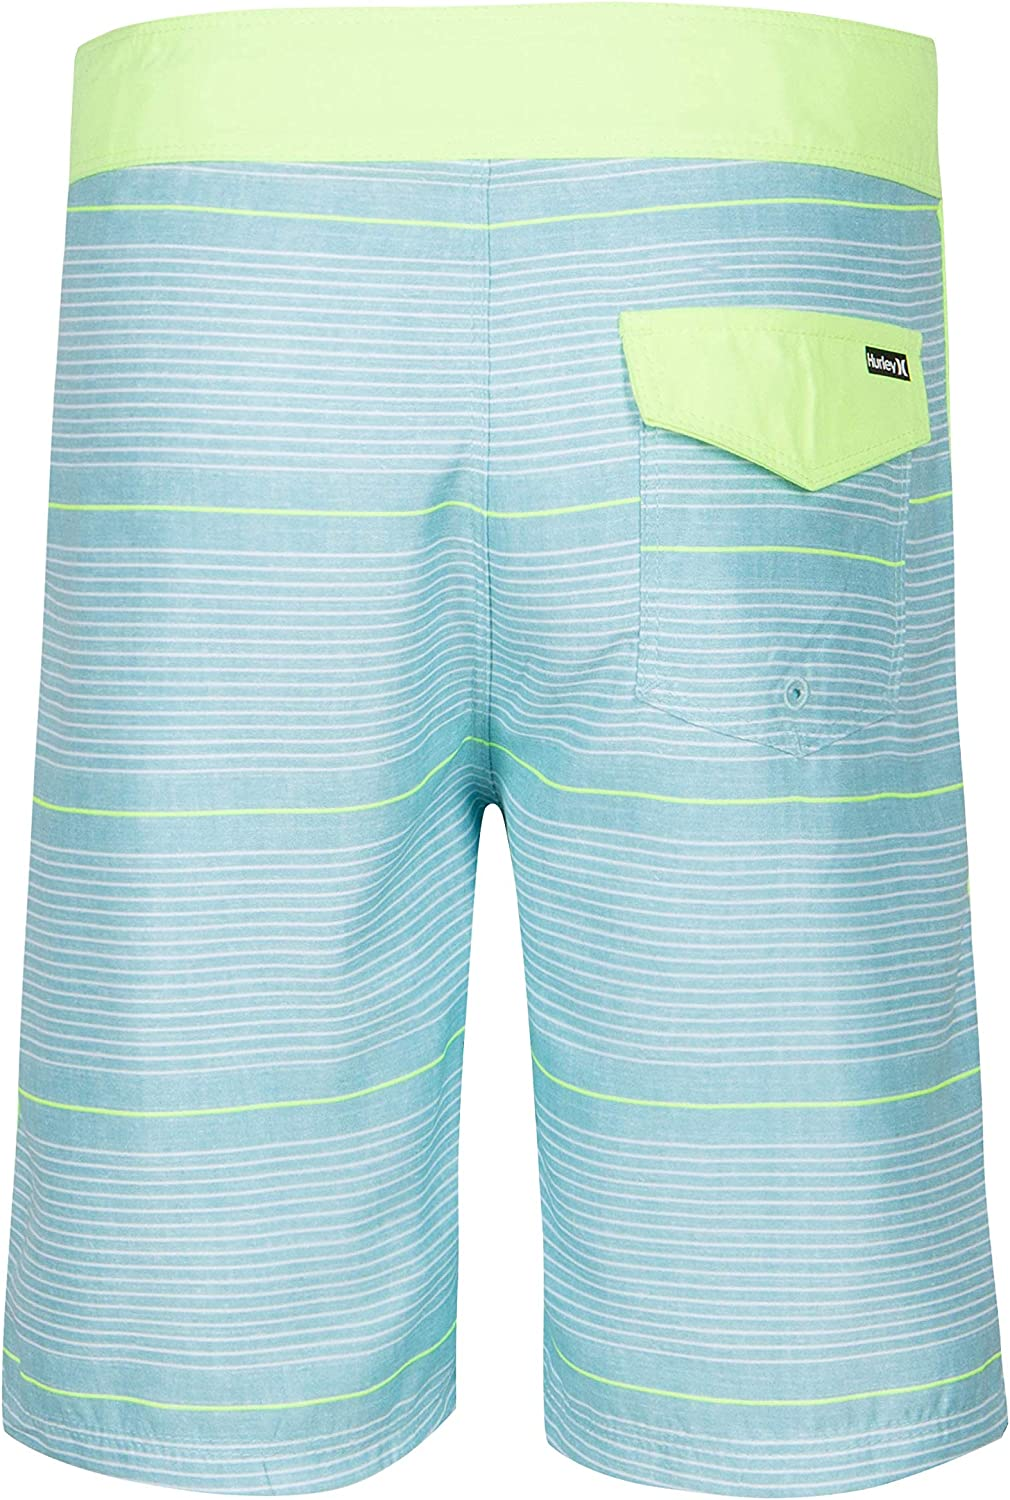 Hurley Kids Boys Shoreline Boardshorts Big Kids